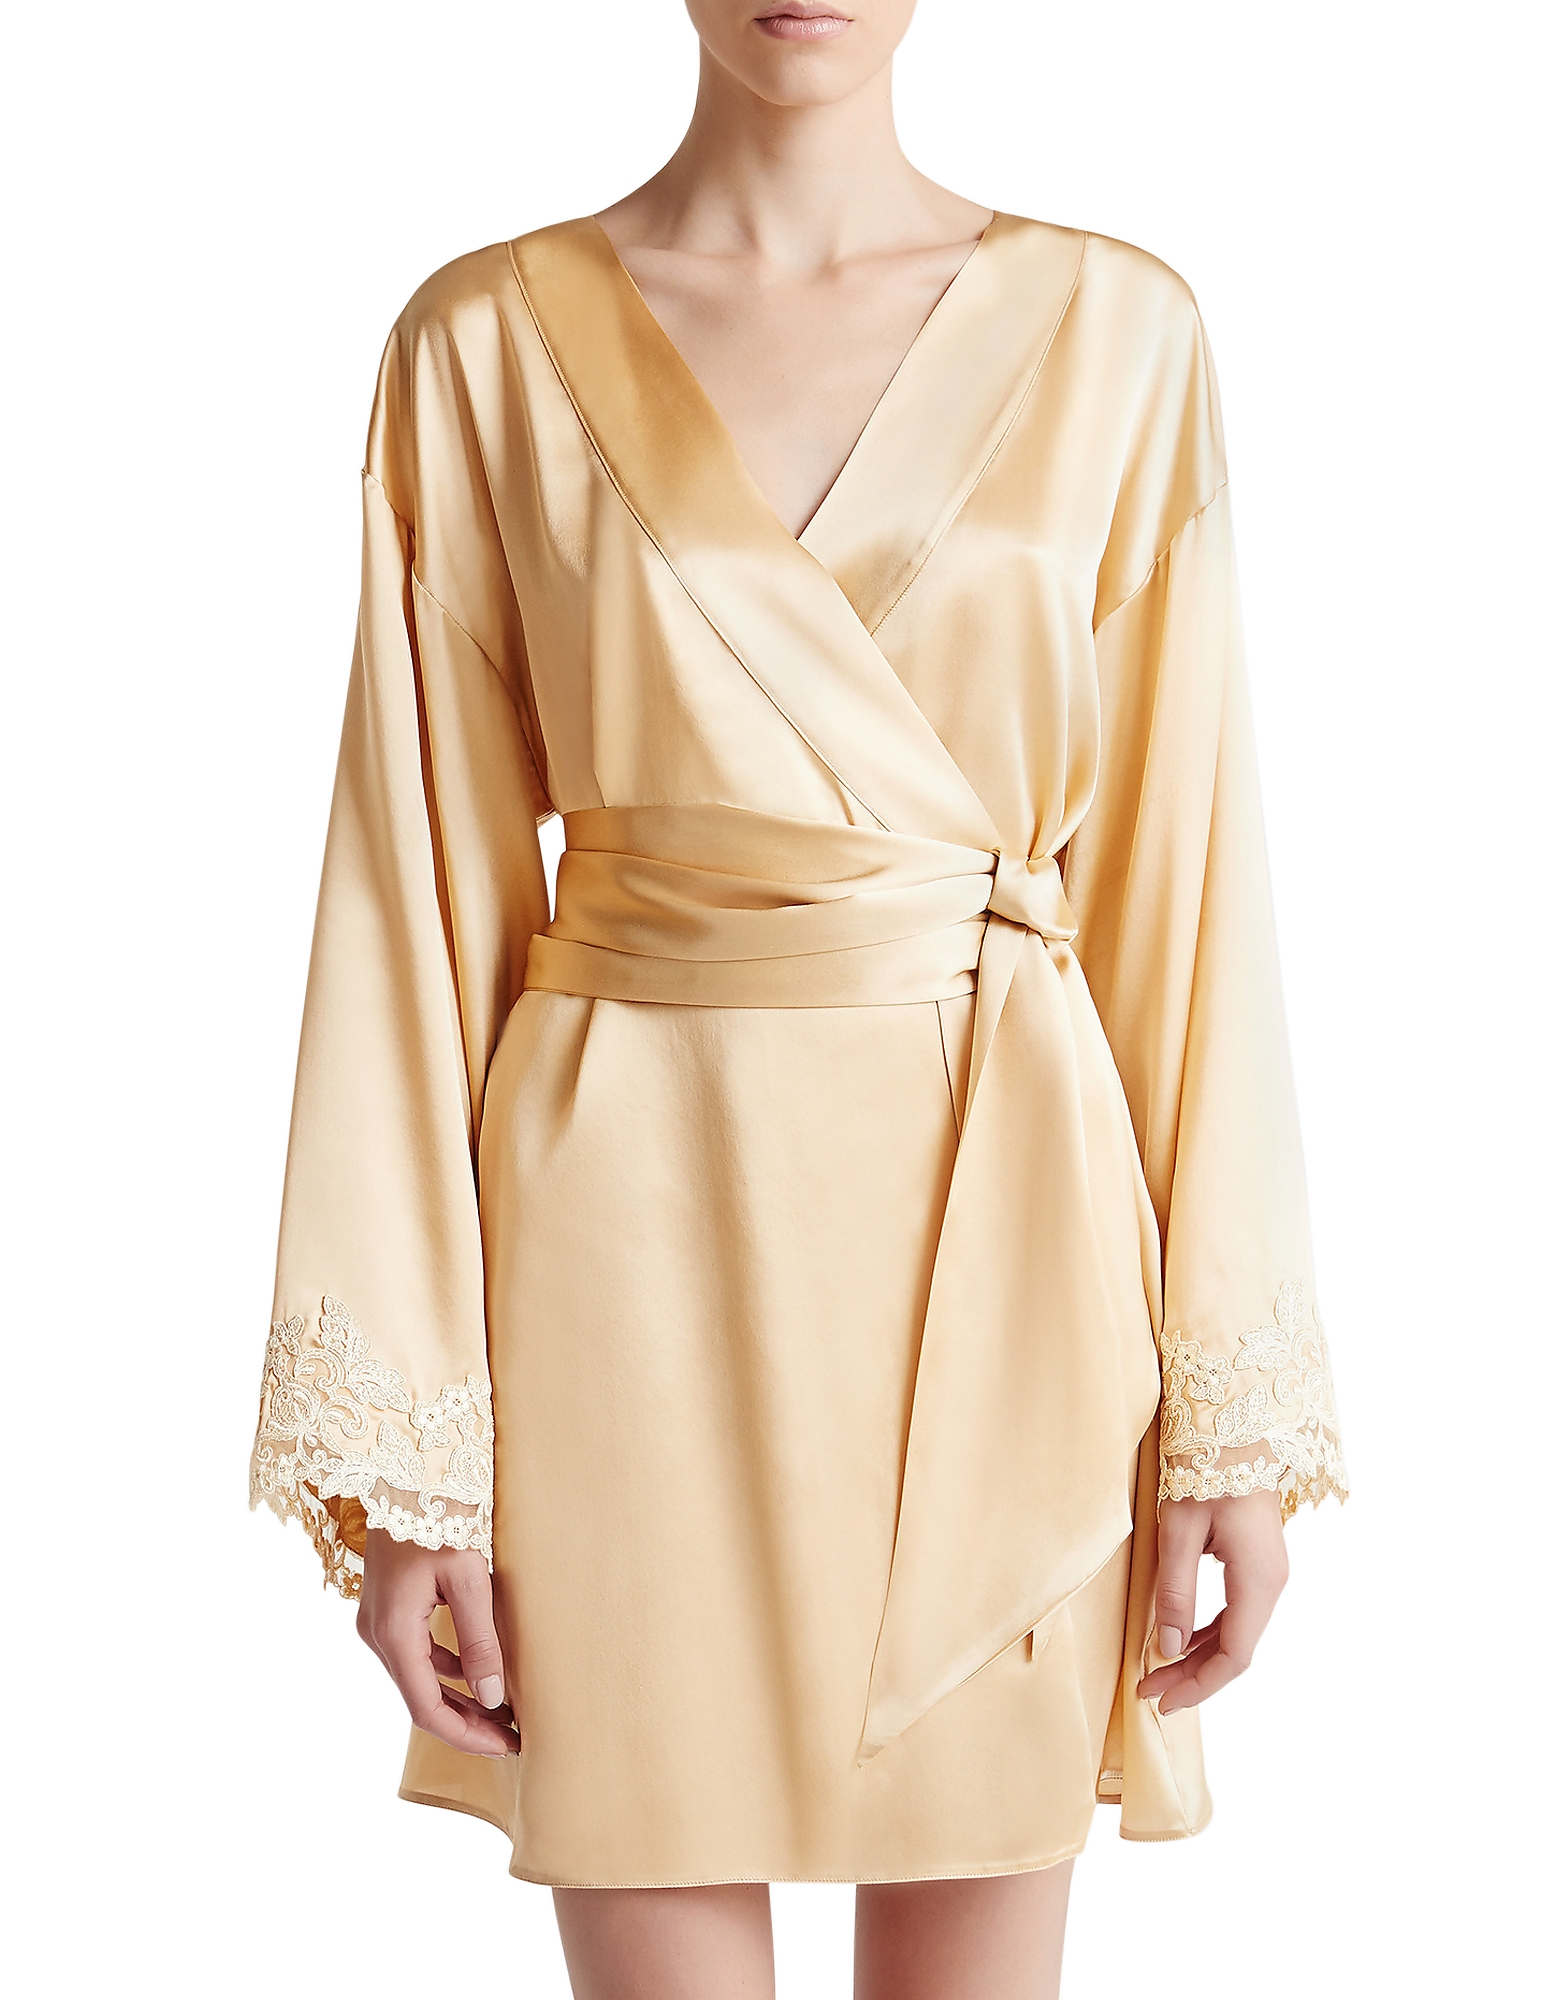 La Perla Robes, Maison Beige Silk Satin Short Robe